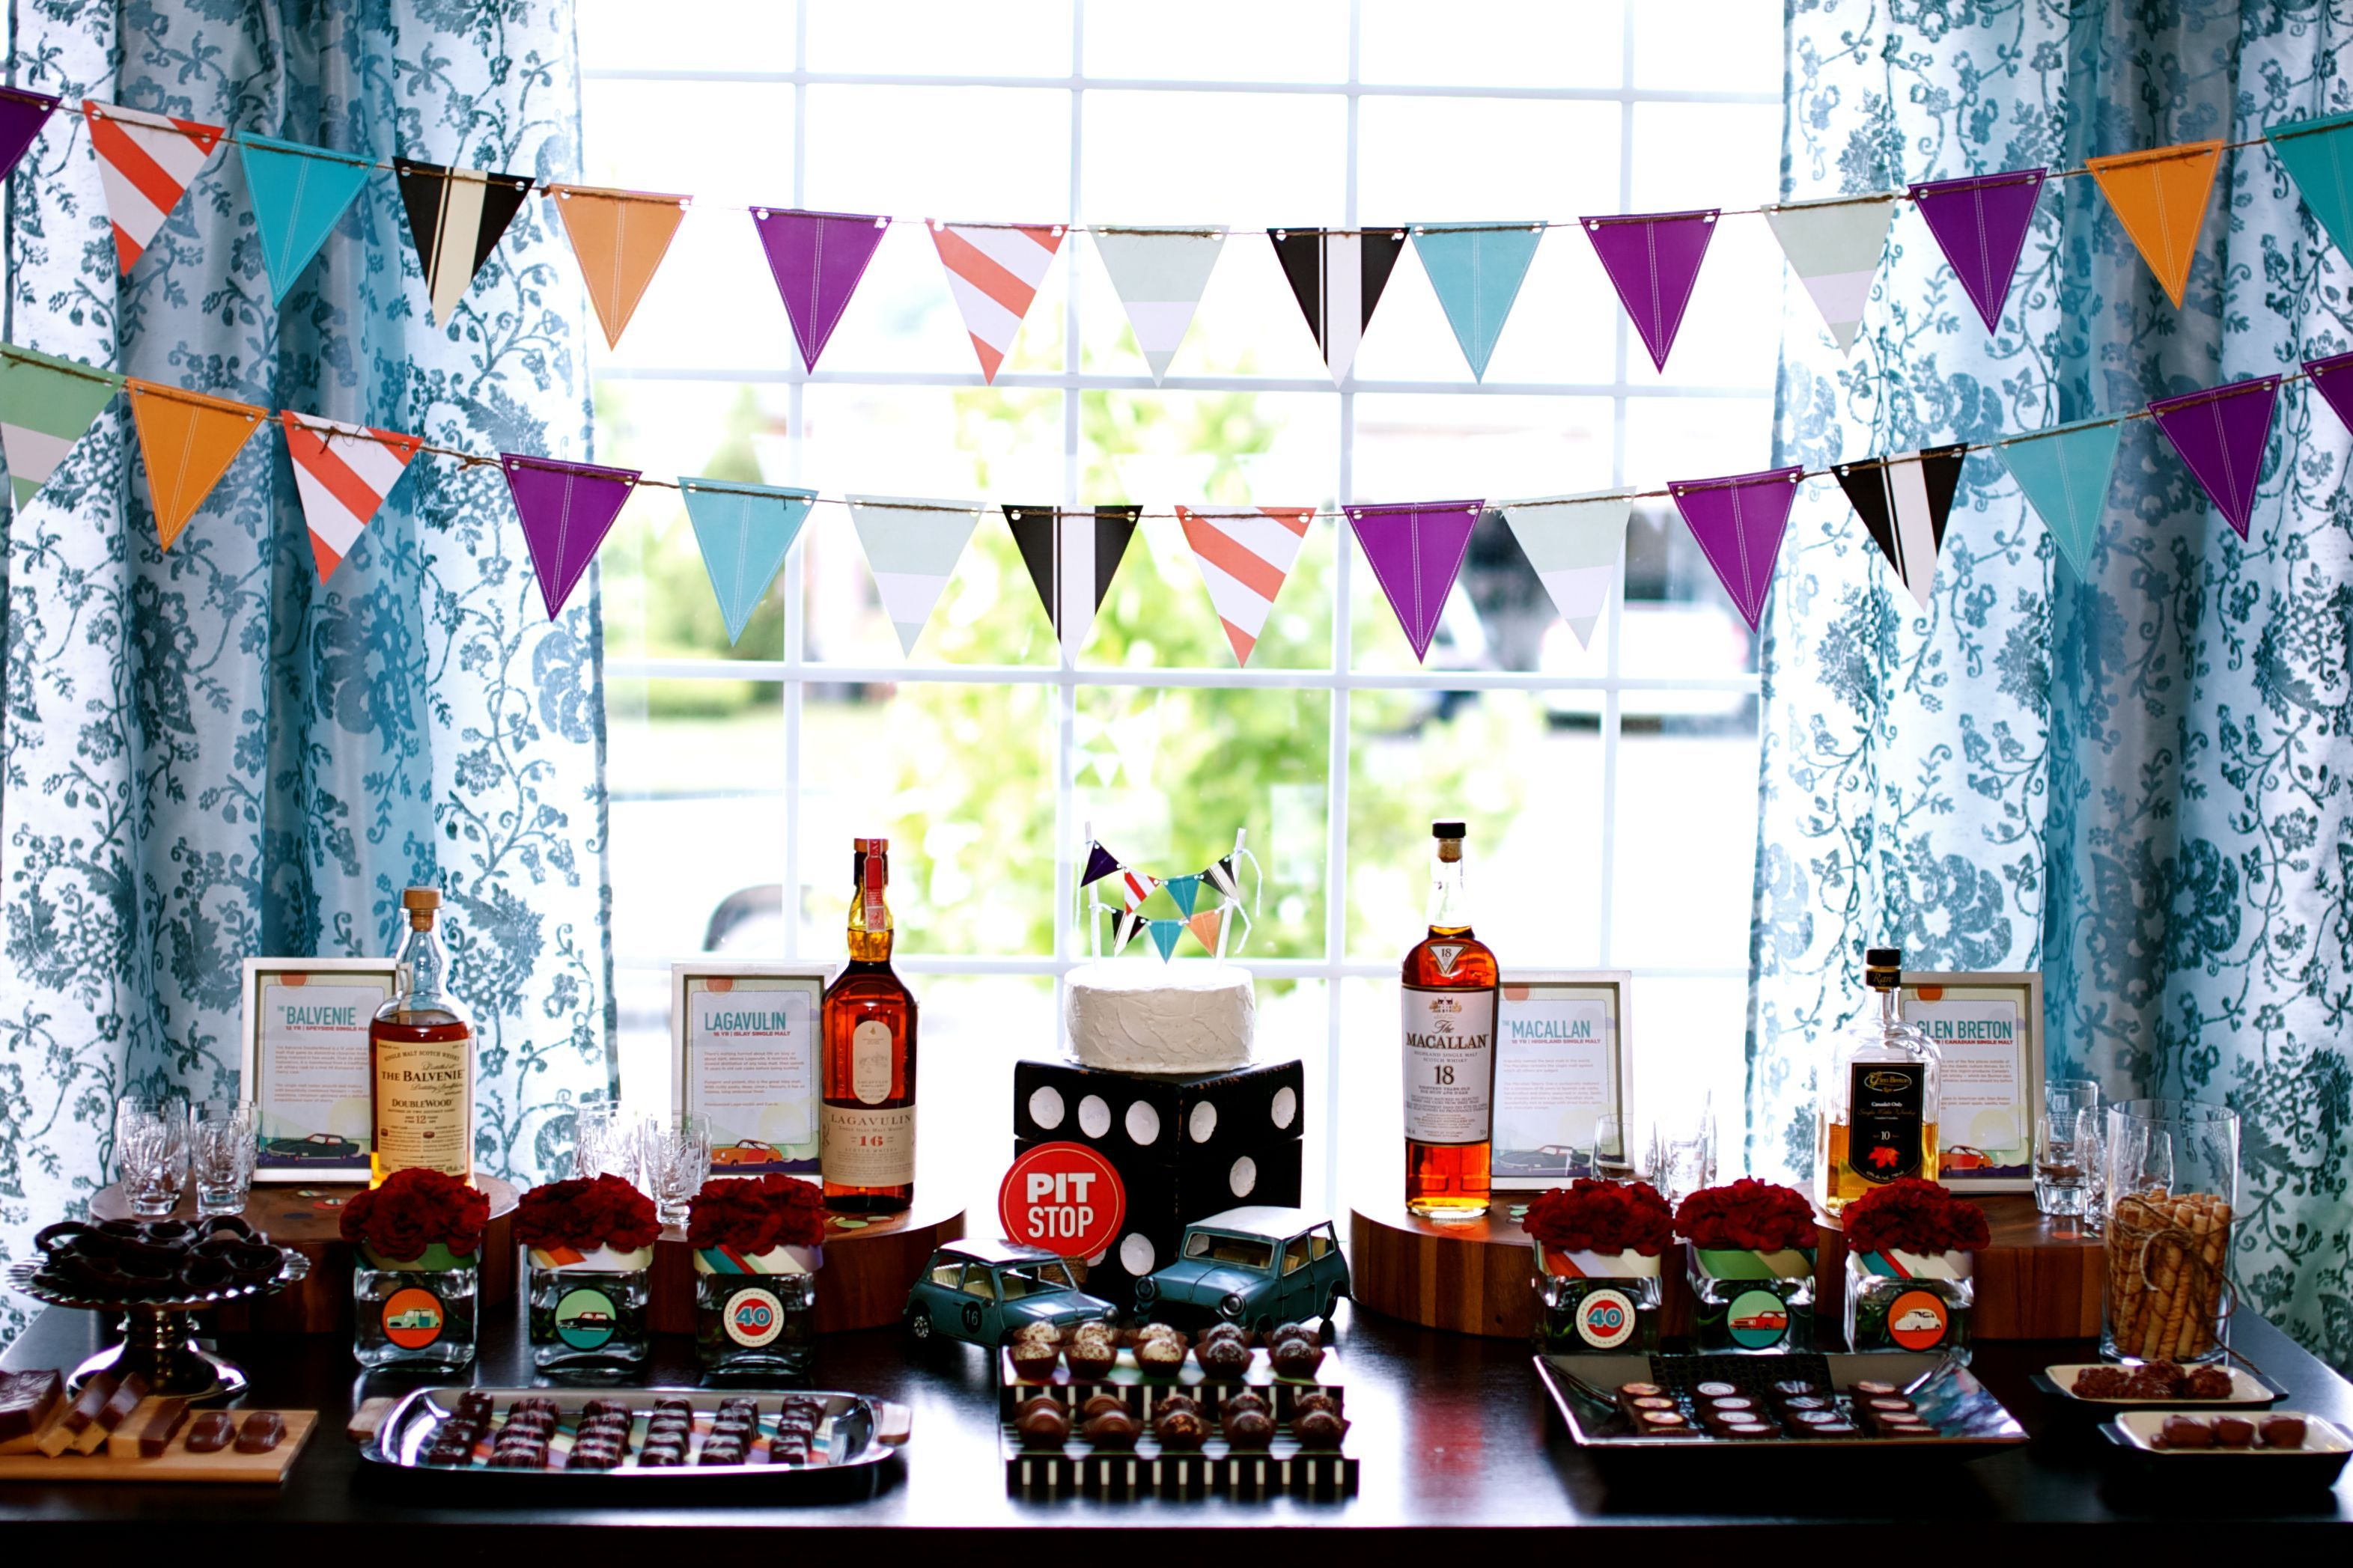 Scotch Chocolate birthday party I like the concept but would